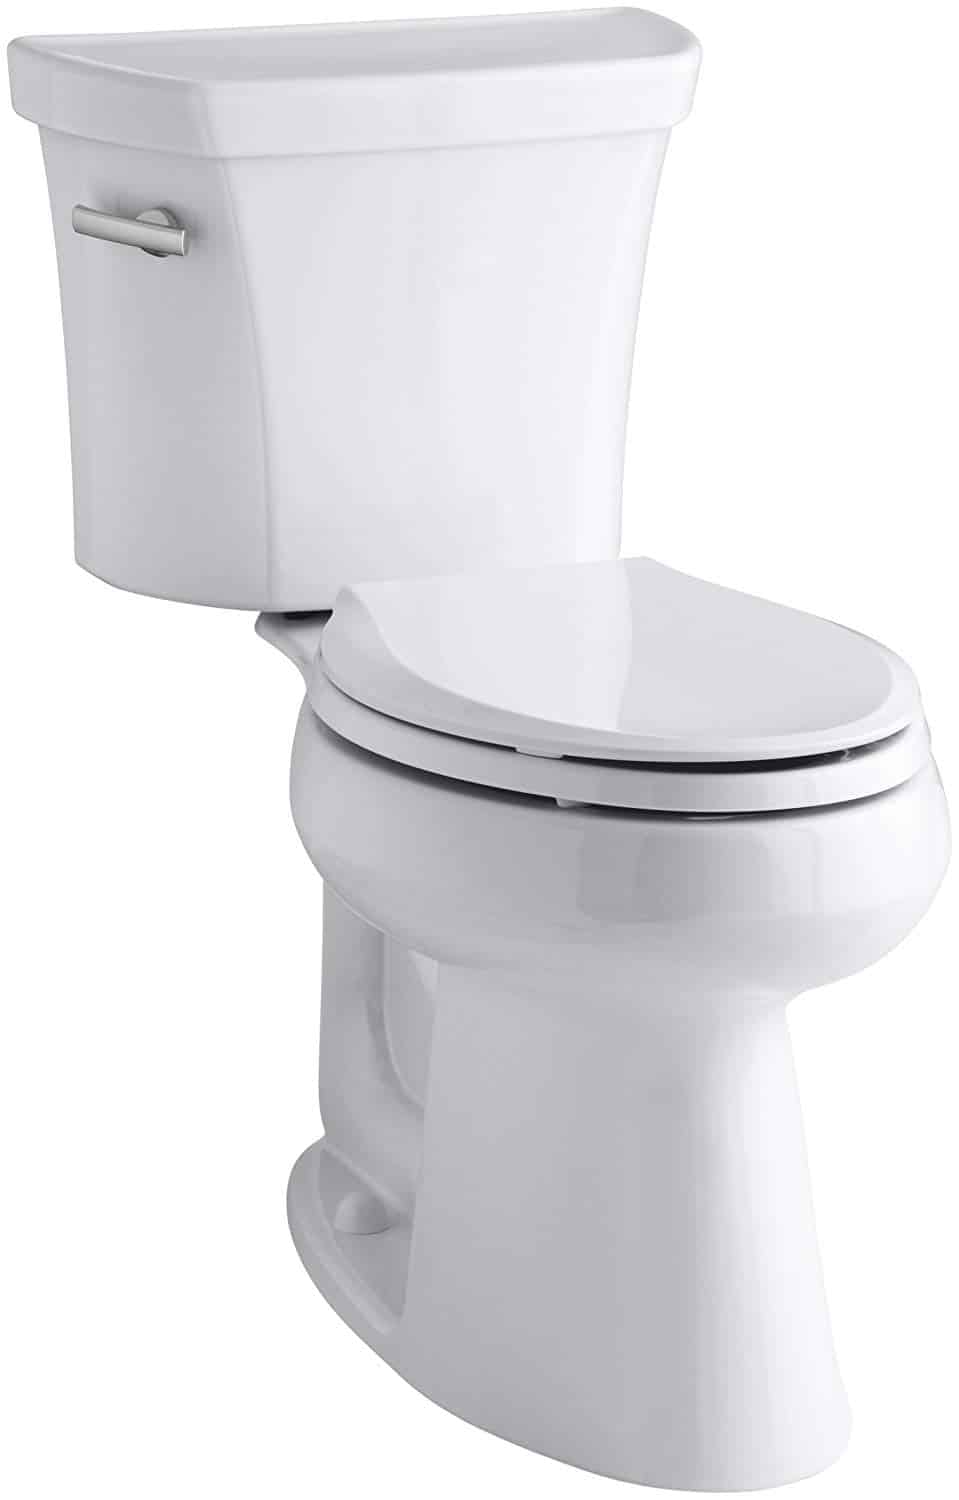 10 Inch Rough In Toilets 2019 Buyer S Guide And Reviews